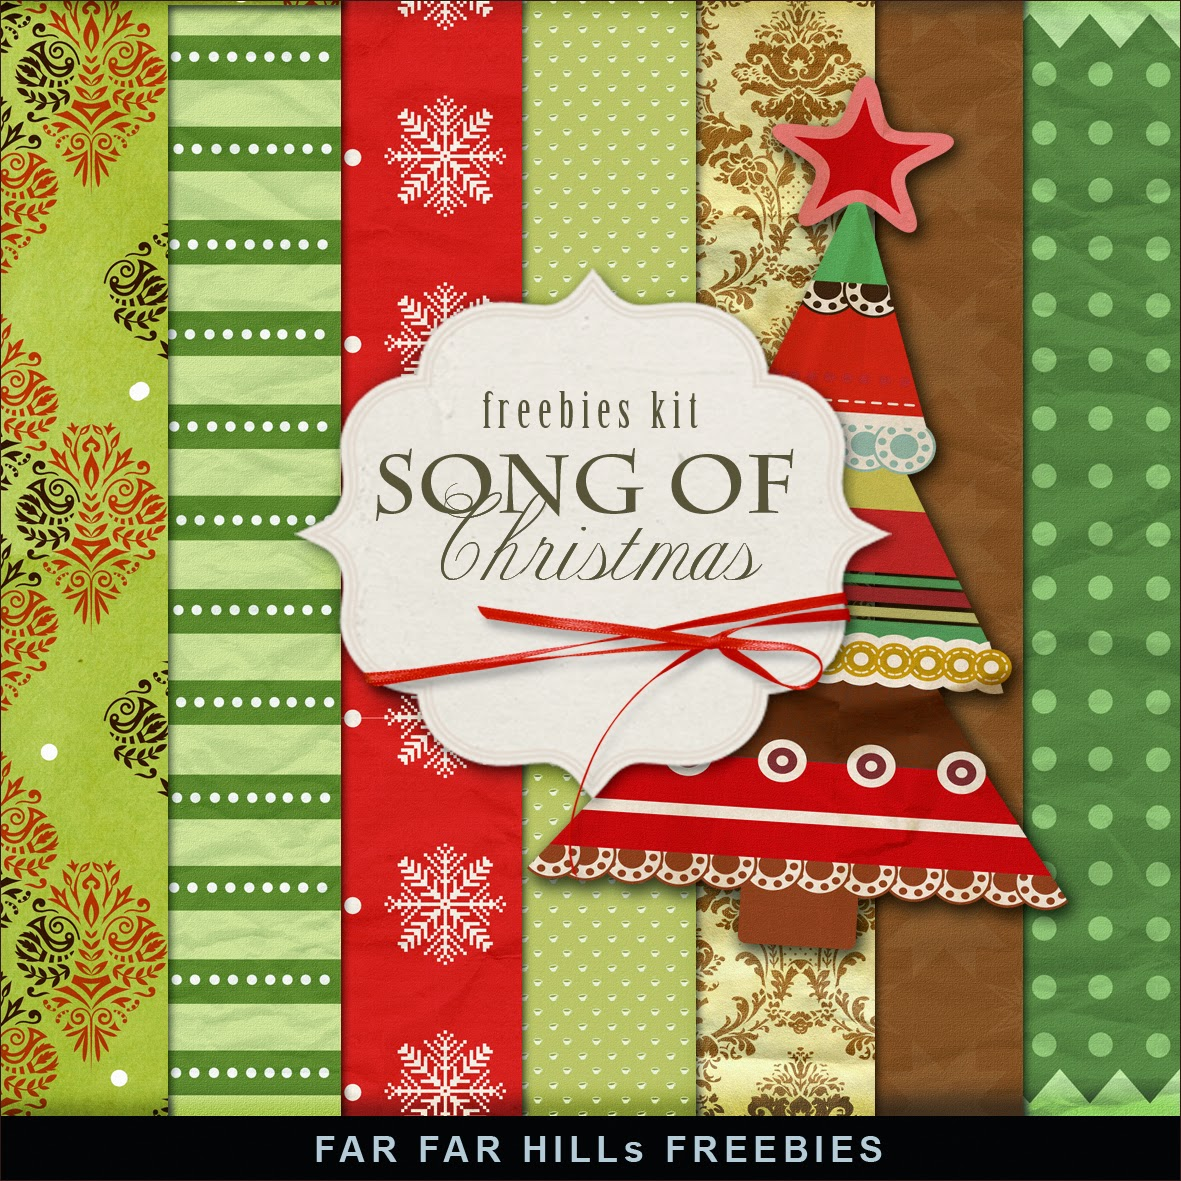 New Freebies Kit Of Backgrounds  Song Of Christmasfar Far Hill  Free Database Of Digital